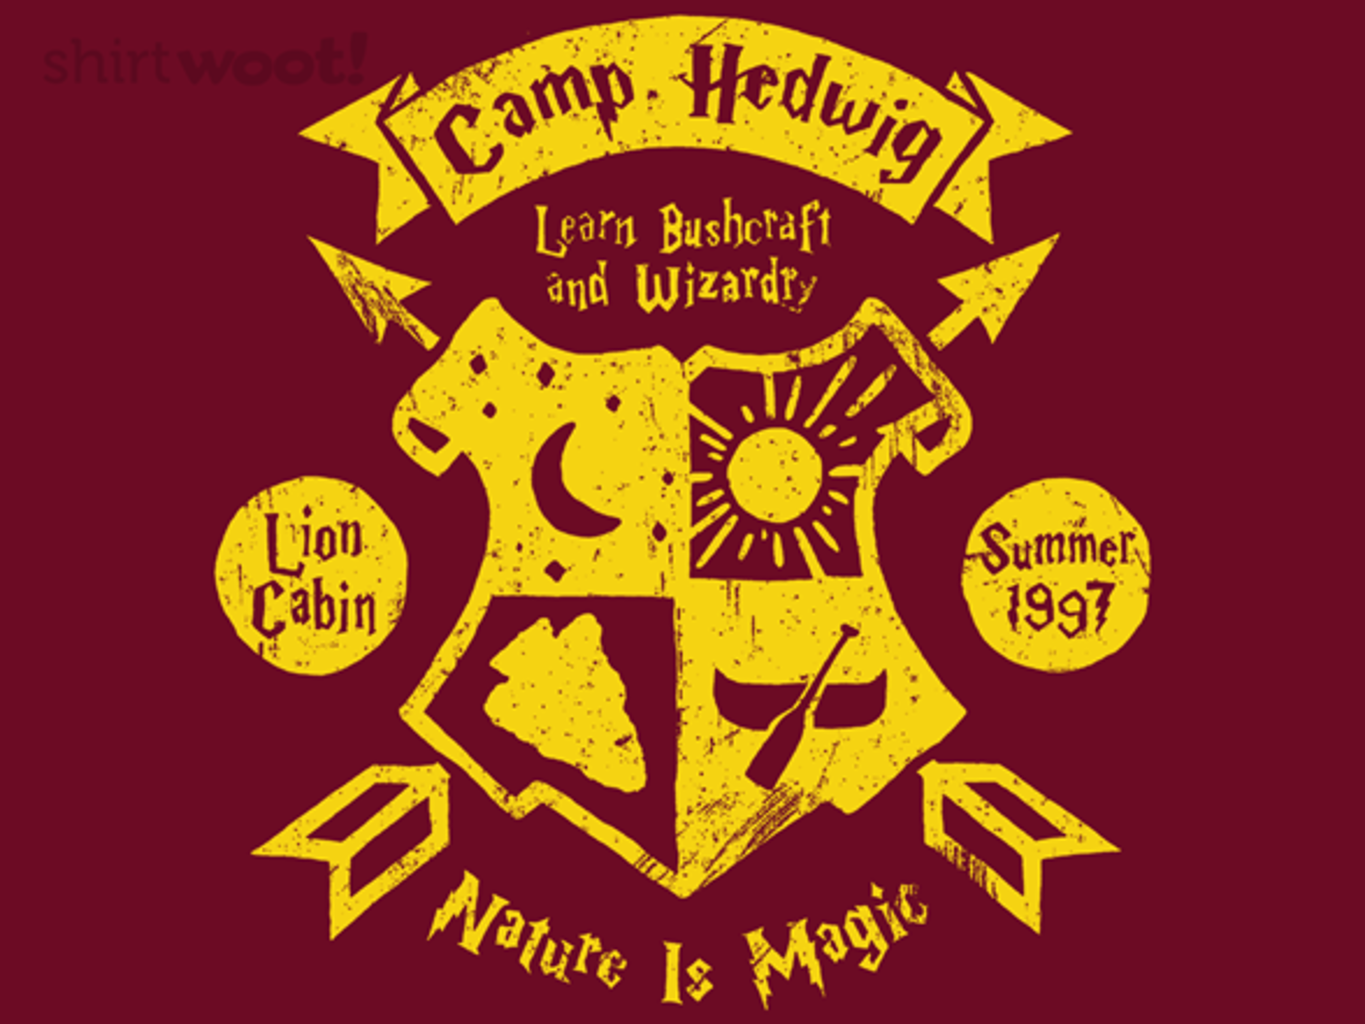 Woot!: Camp Hedwig Lions